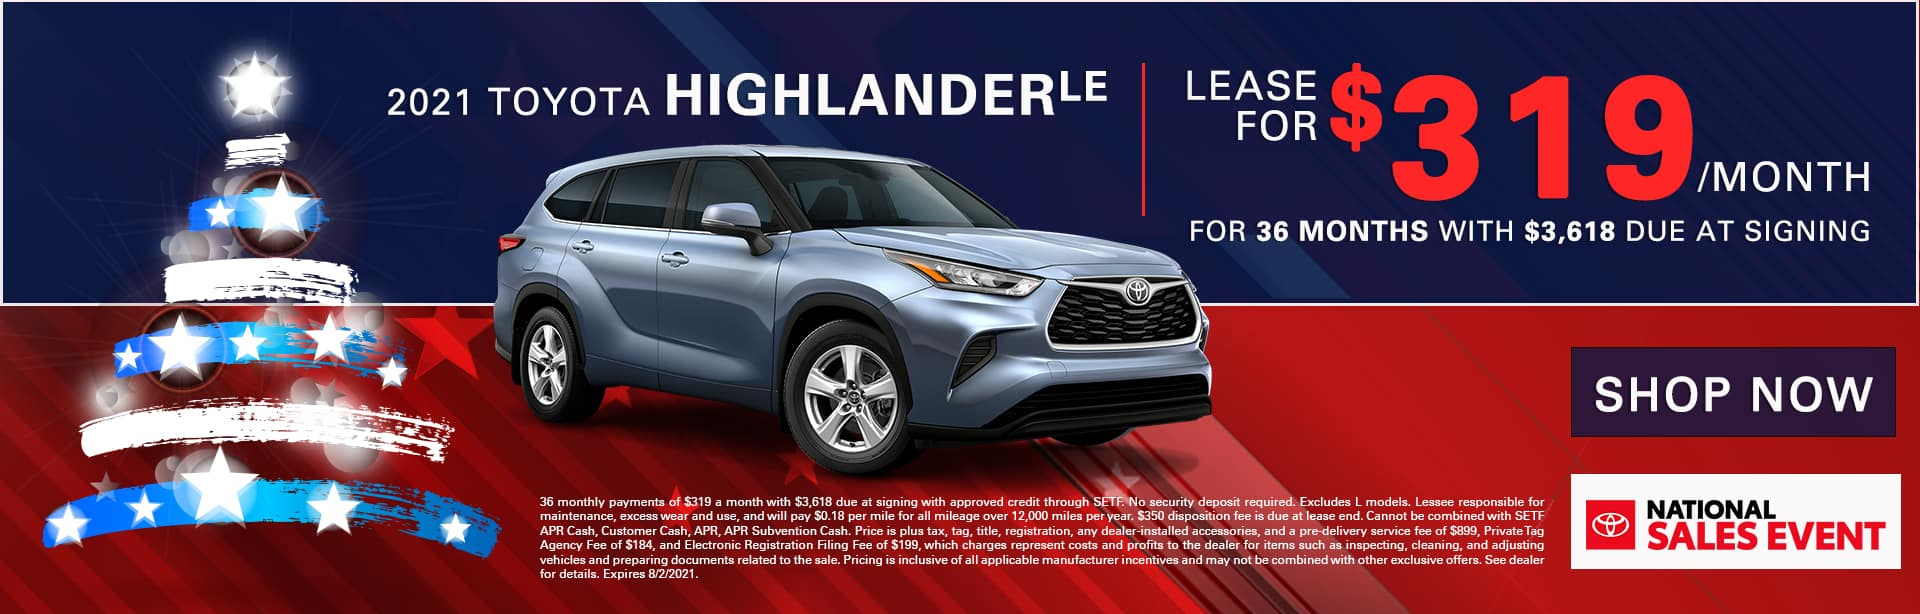 2021 Toyota Highlander LE | Lease For $319/Month for 36 Months with $3,618 Due At Signing